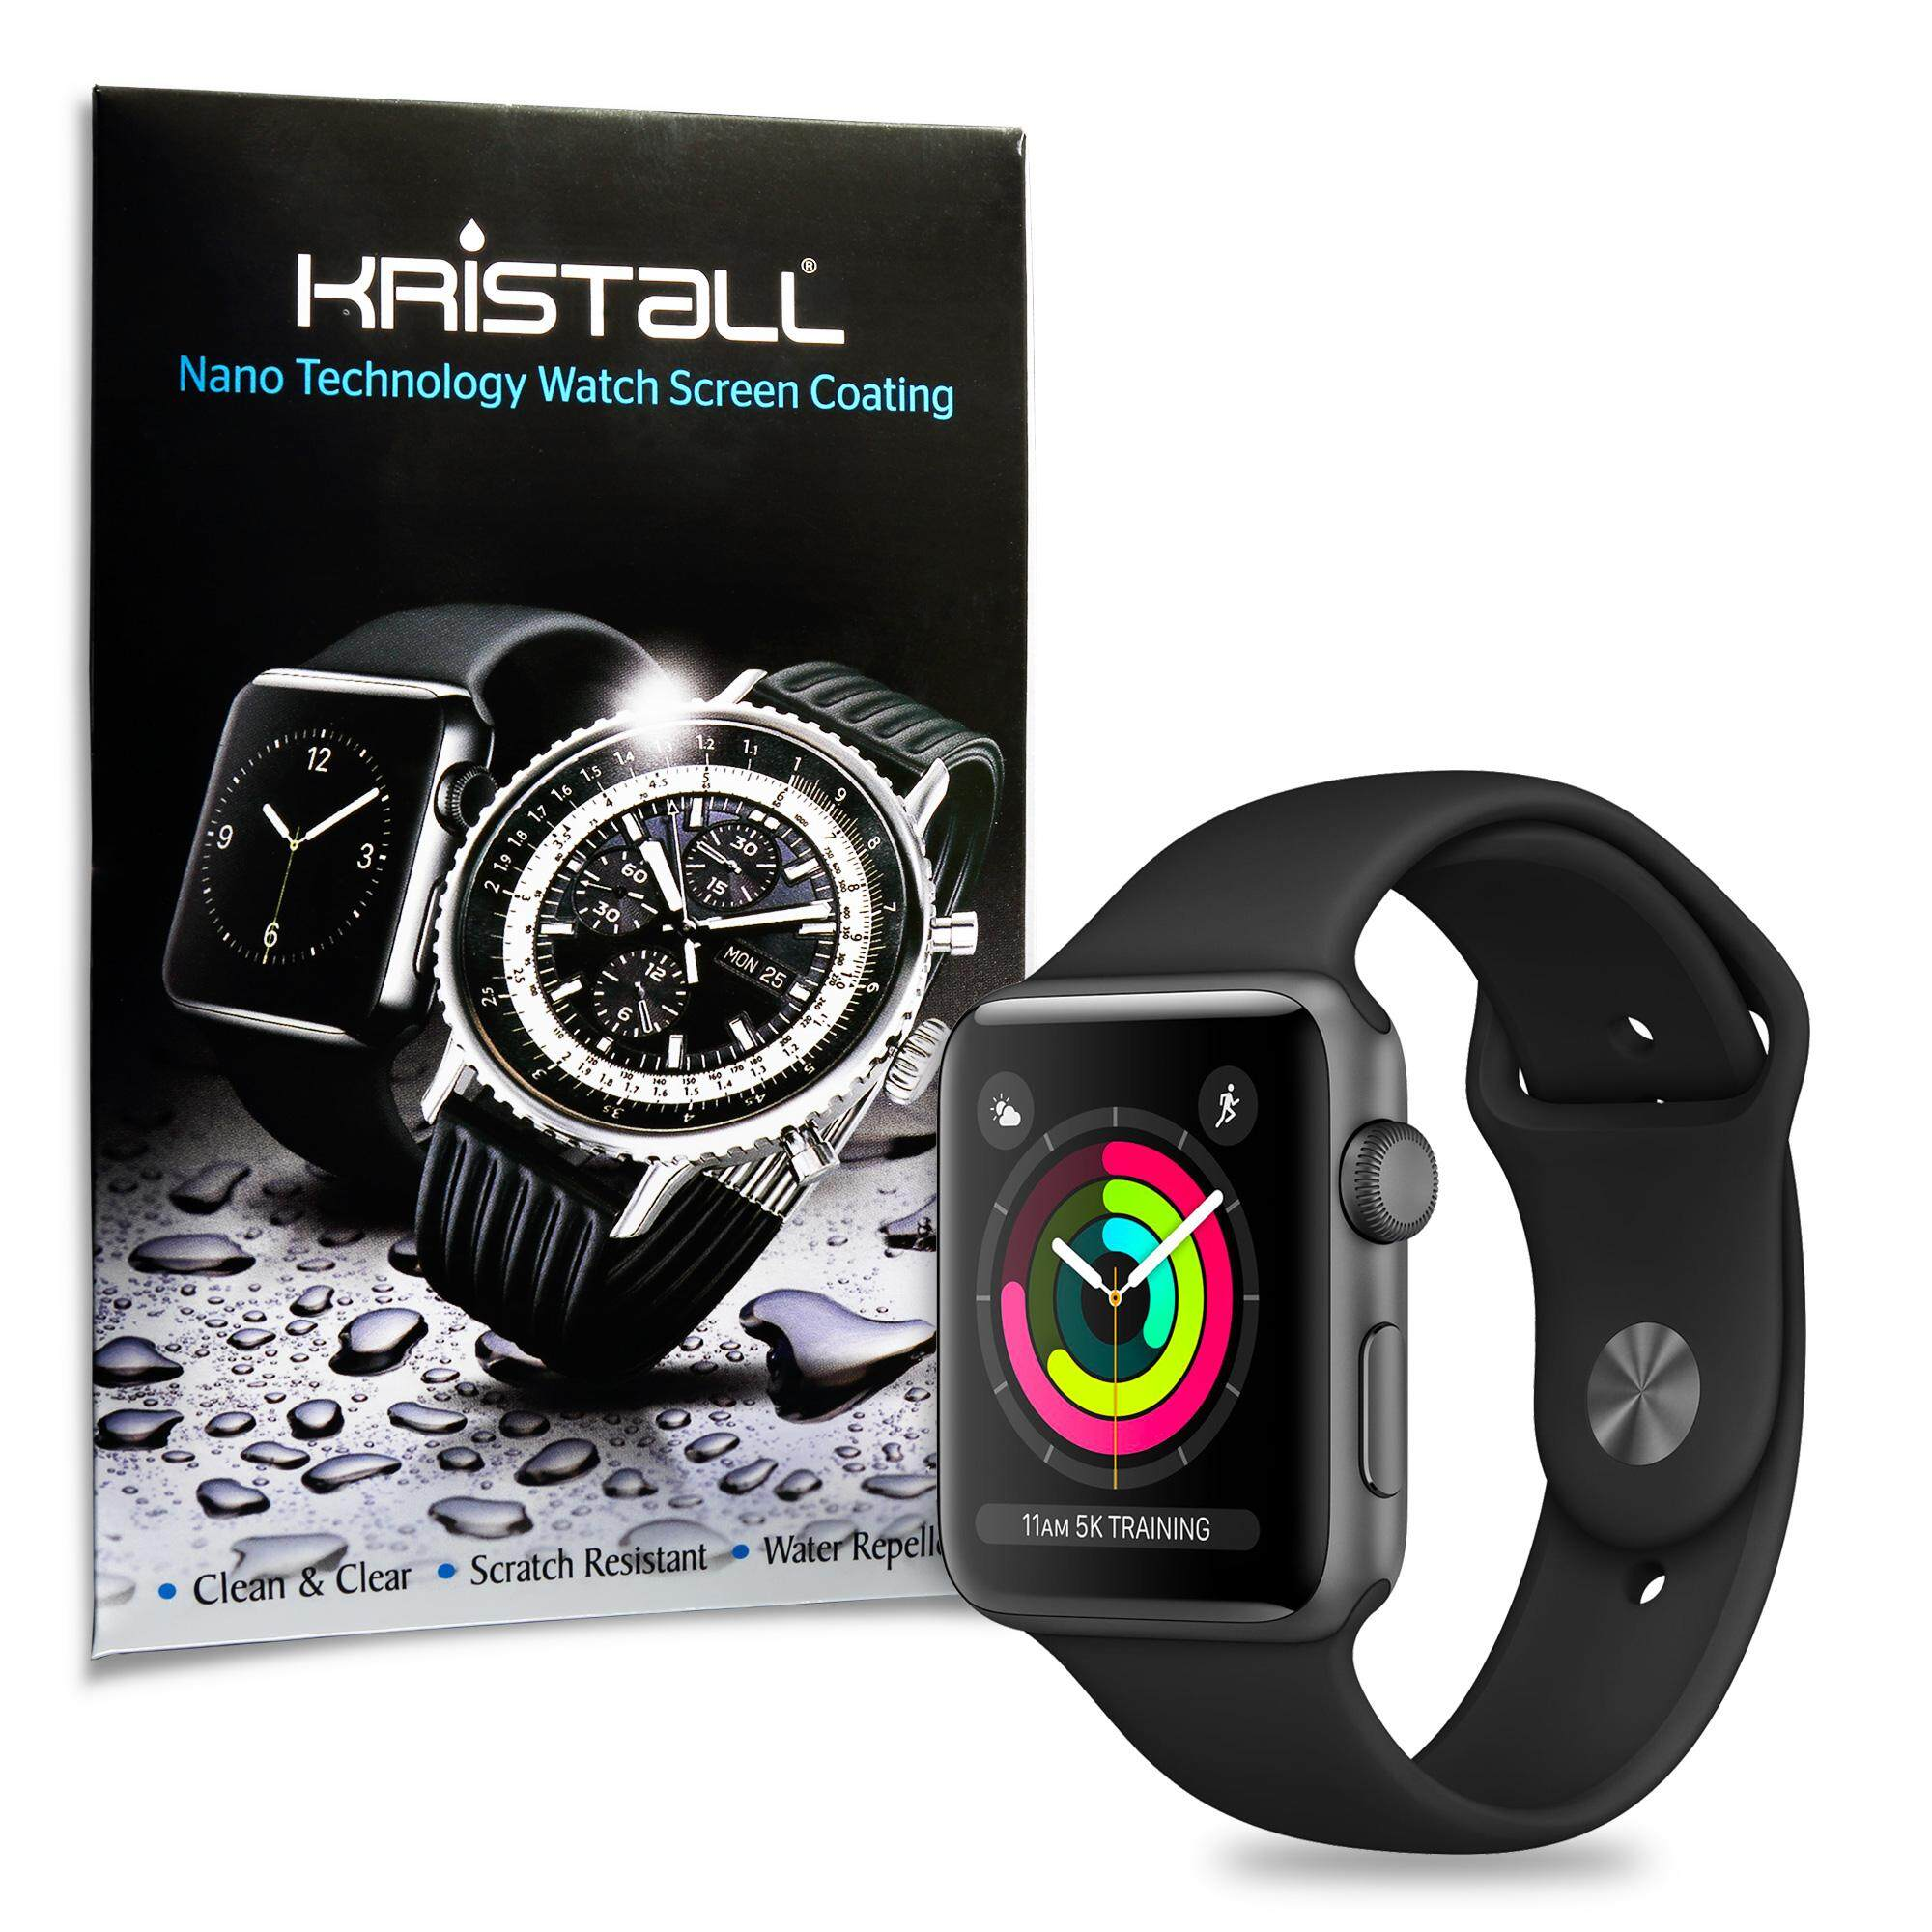 Apple Watch Series 3 Screen Protector - Kristall® 9H Hardness Full Coverage Liquid Nano Coating Screen Protector for Smartwatches (Bubble-FREE Screen Protector, EASY to Apply, Edge-to-Edge Protection)